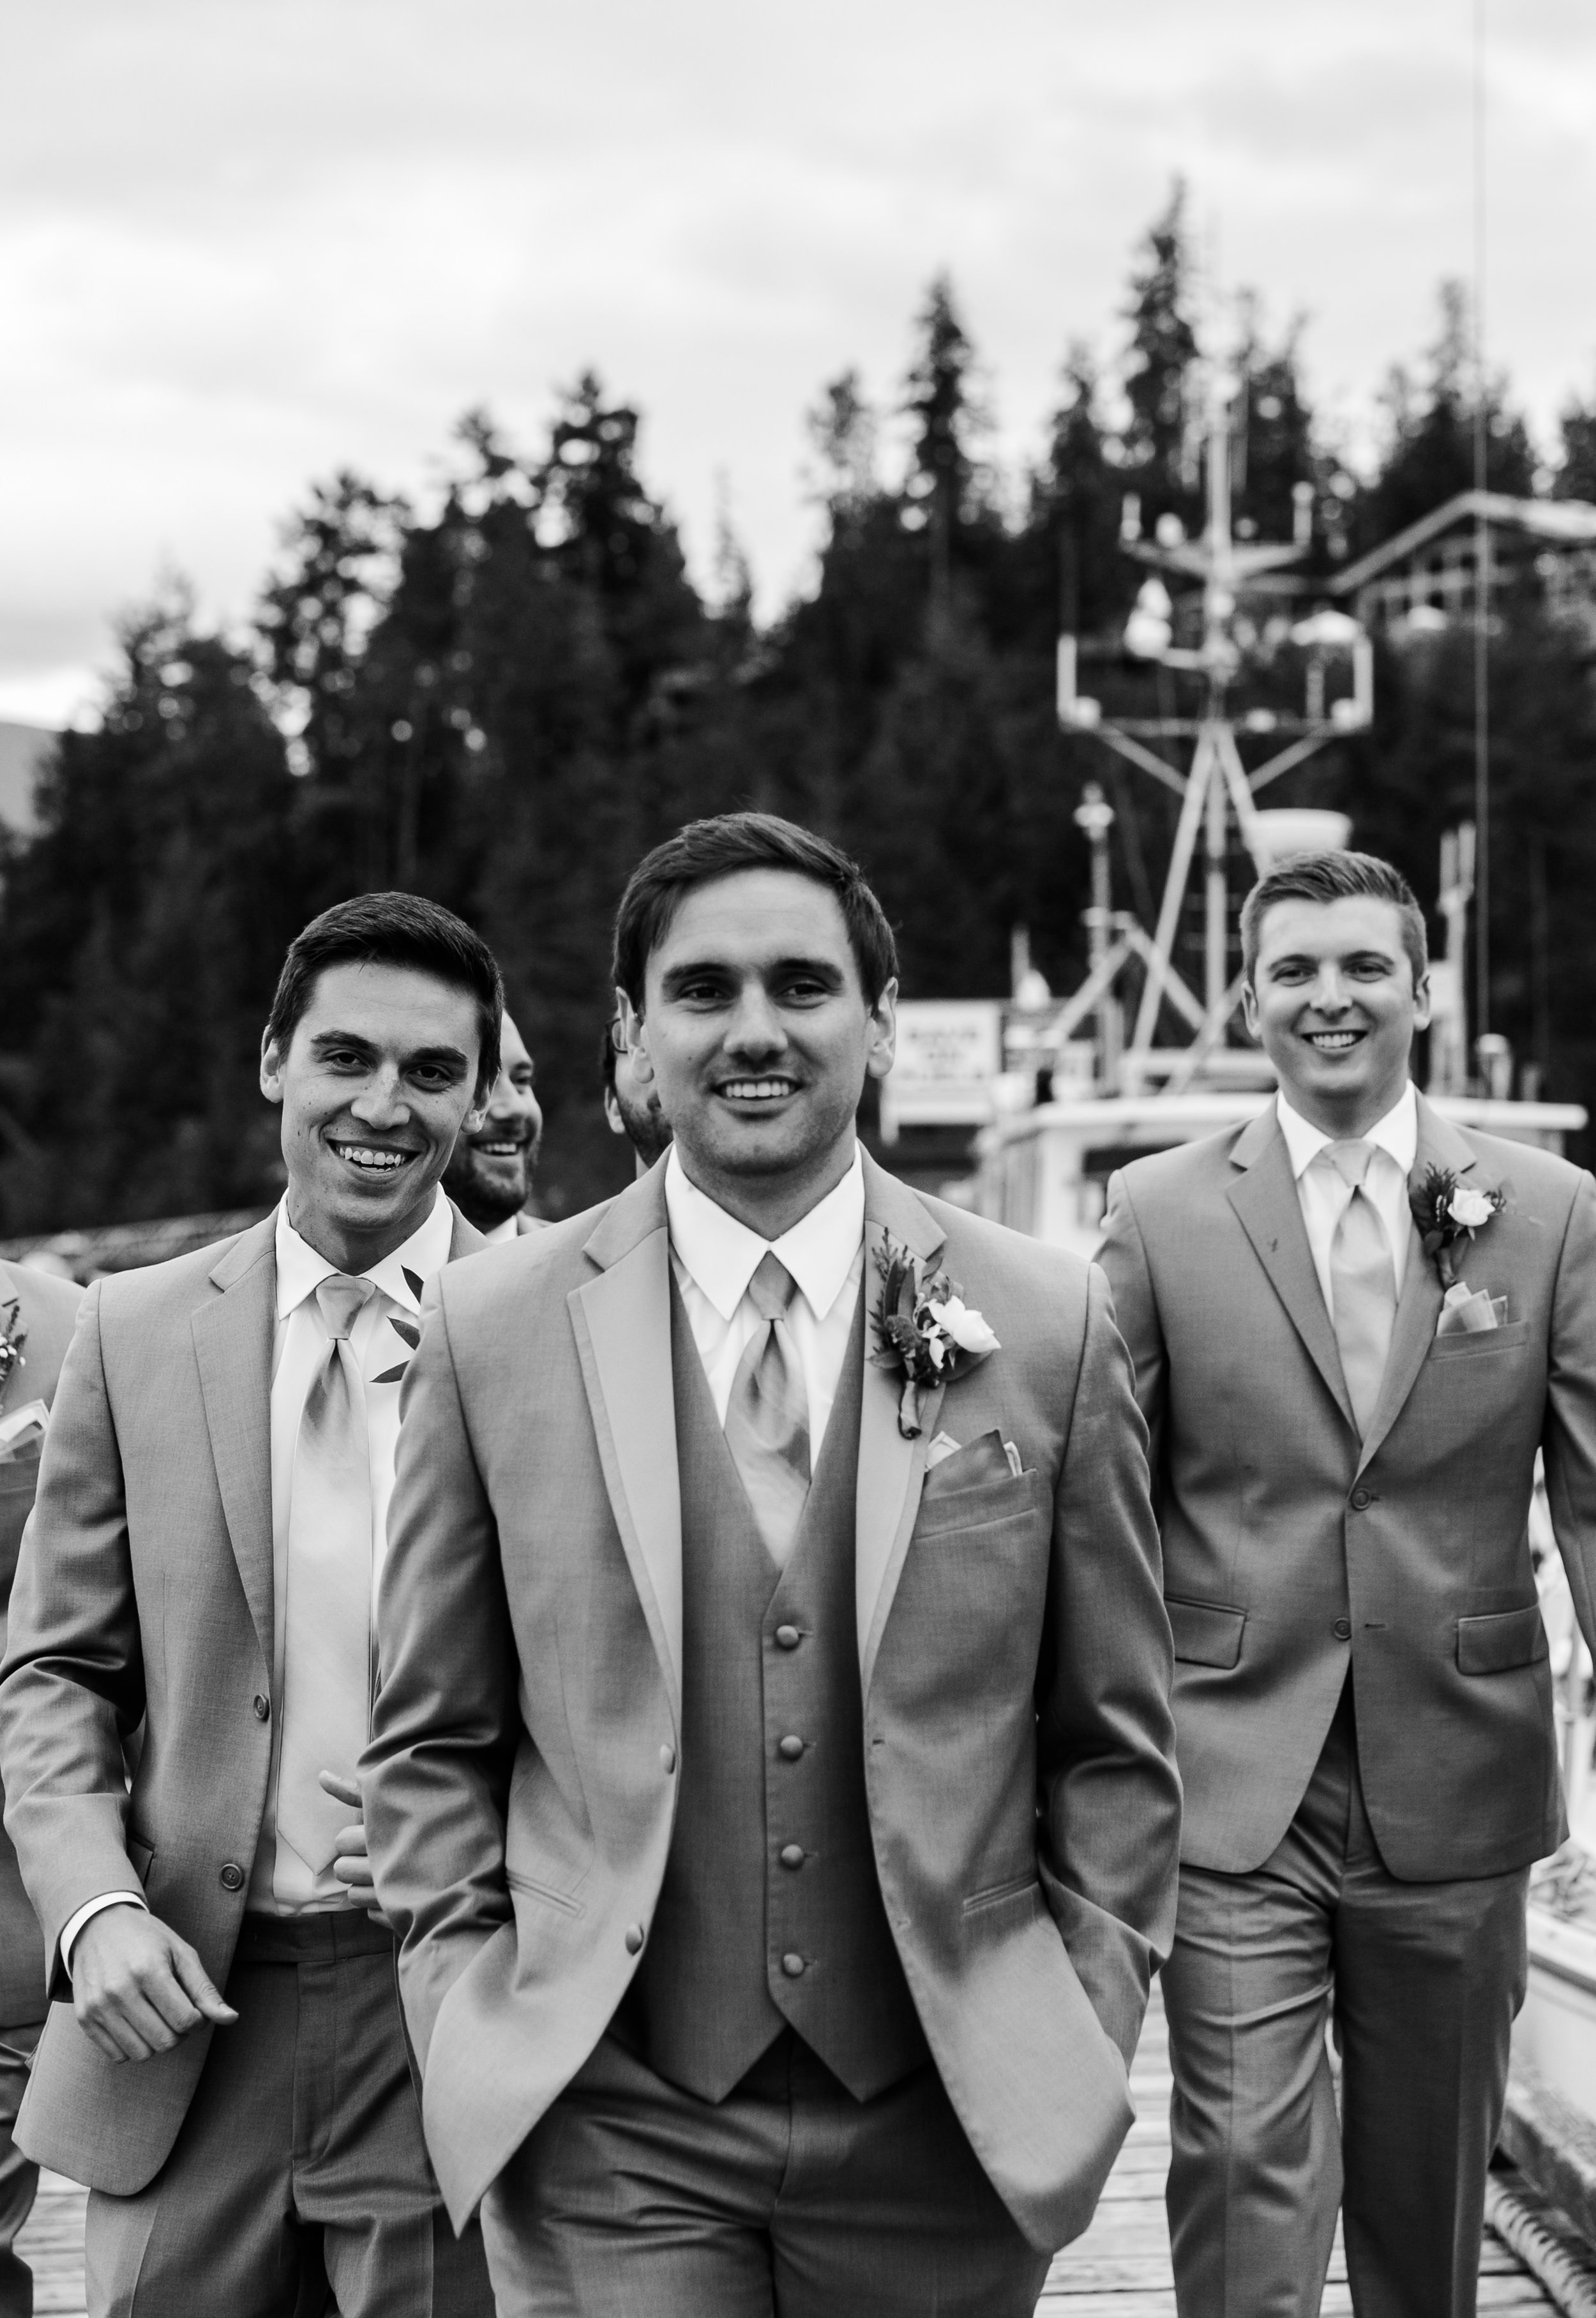 West Coast Wilderness Lodge Wedding Photos - Vancouver Wedding Photographer & Videographer - Sunshine Coast Wedding Photos - Sunshine Coast Wedding Photographer - Jennifer Picard Photography - IMG_6133.jpg